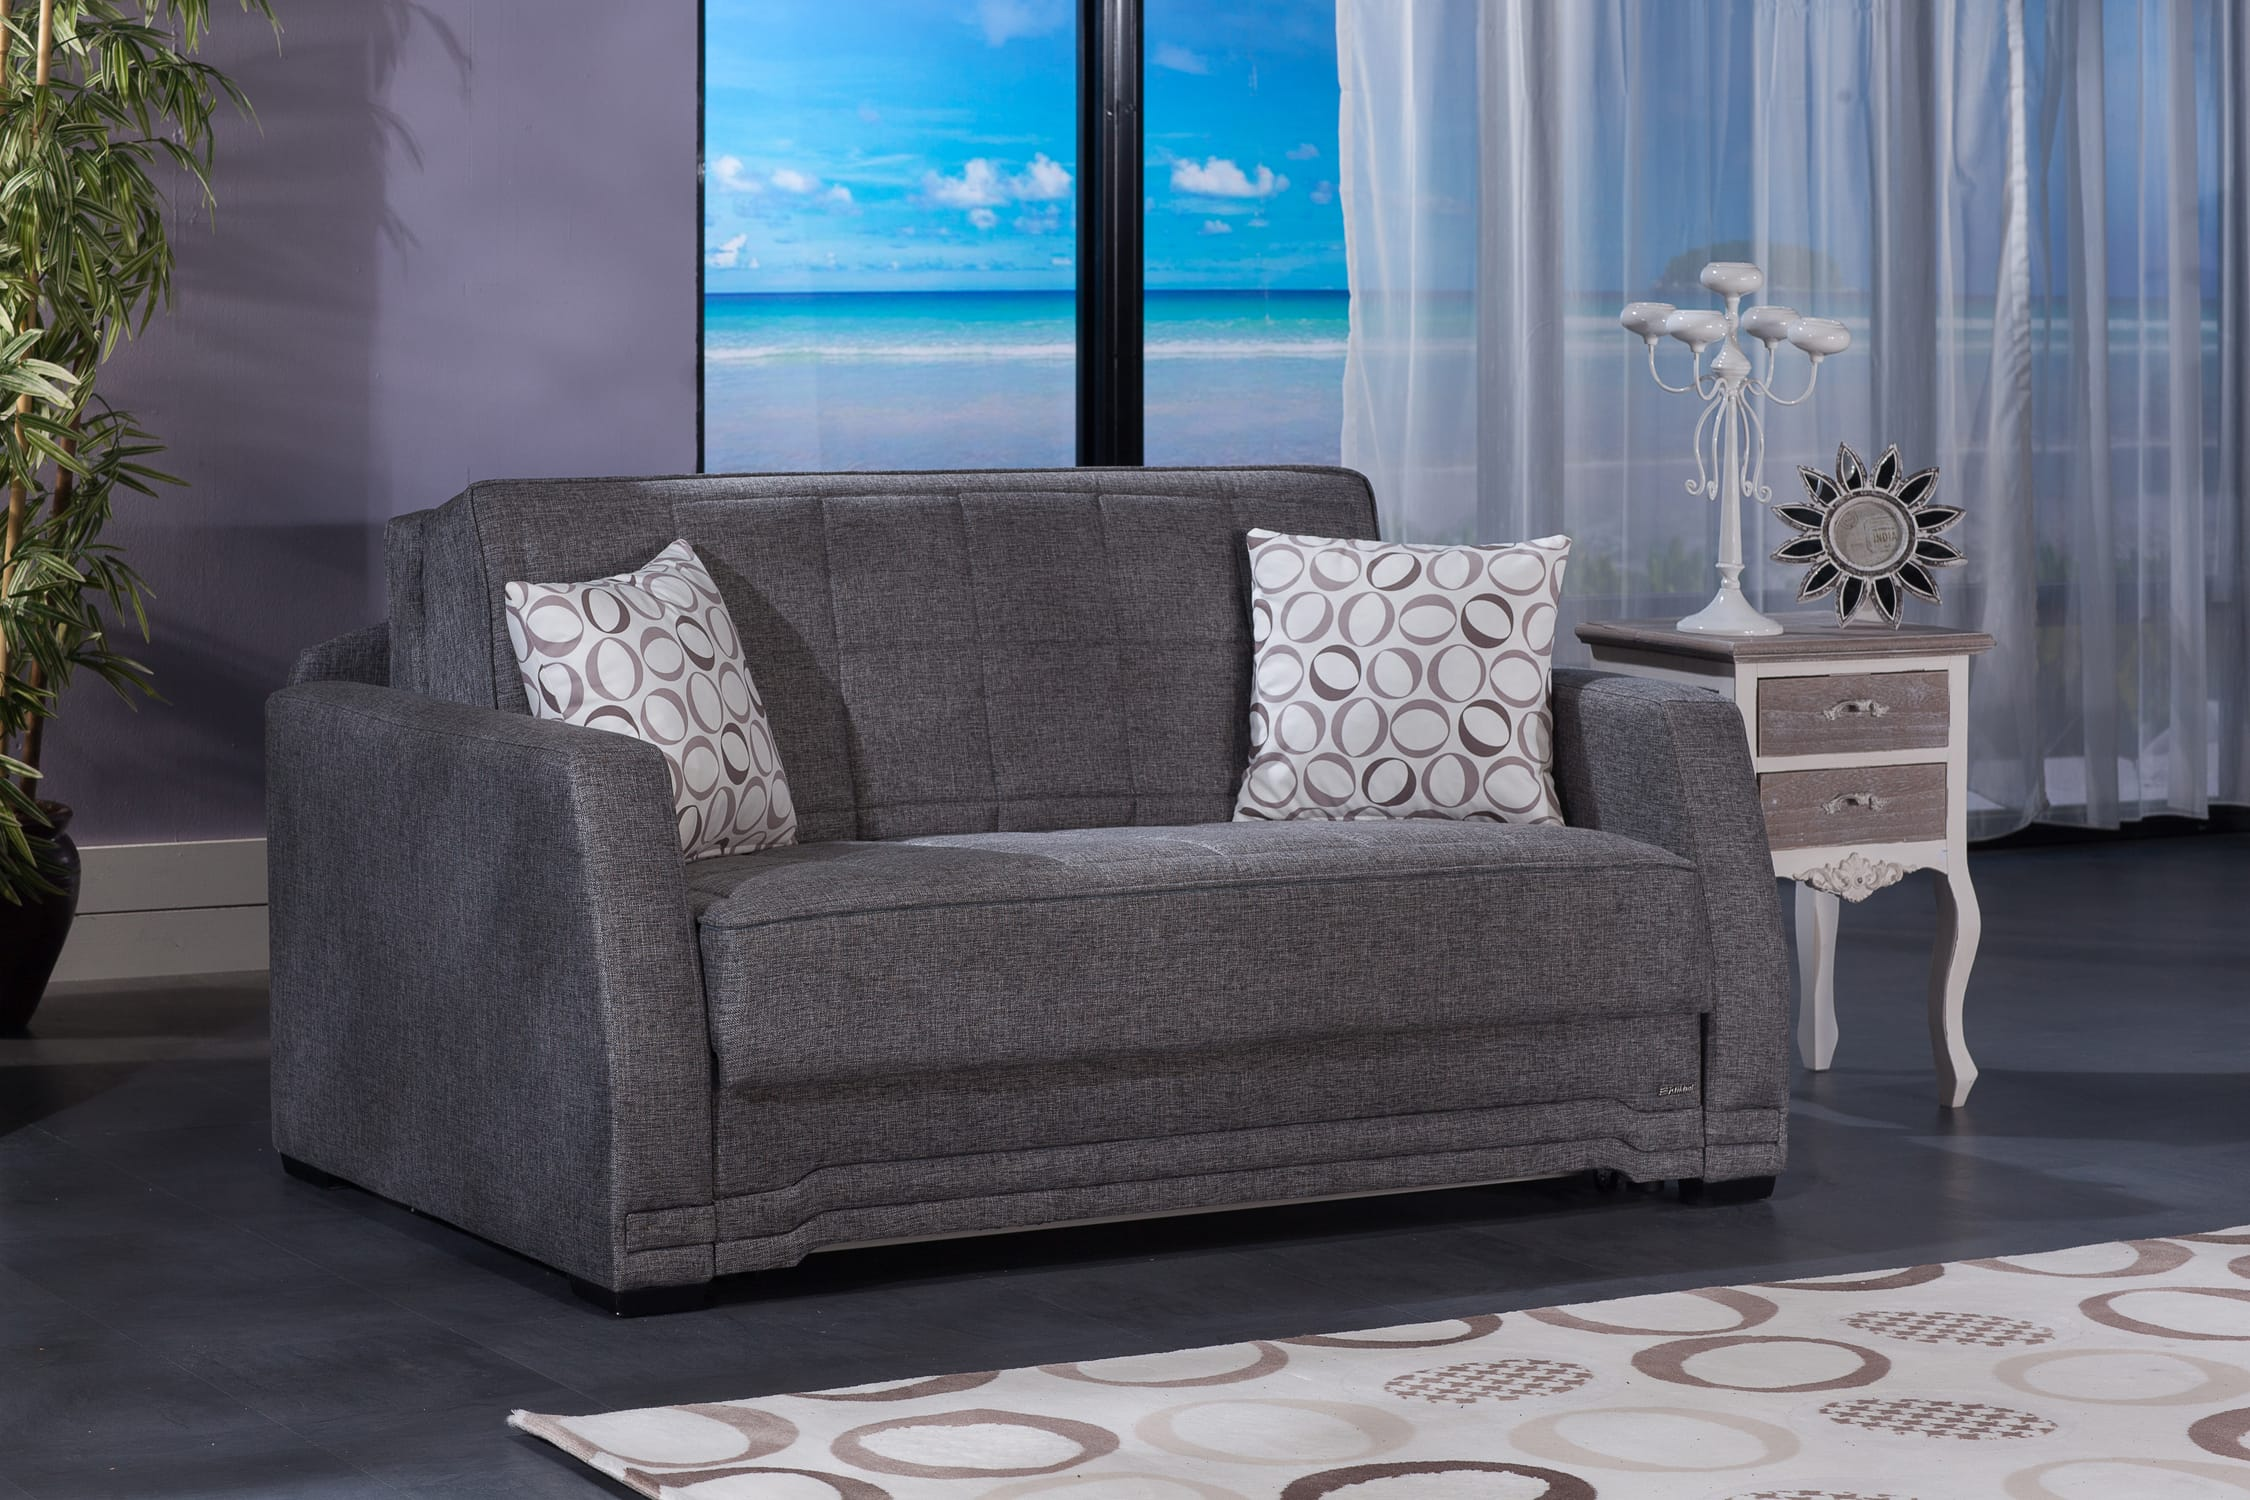 Valerie Diego Gray Loveseat Sleeper By Istikbal Sunset